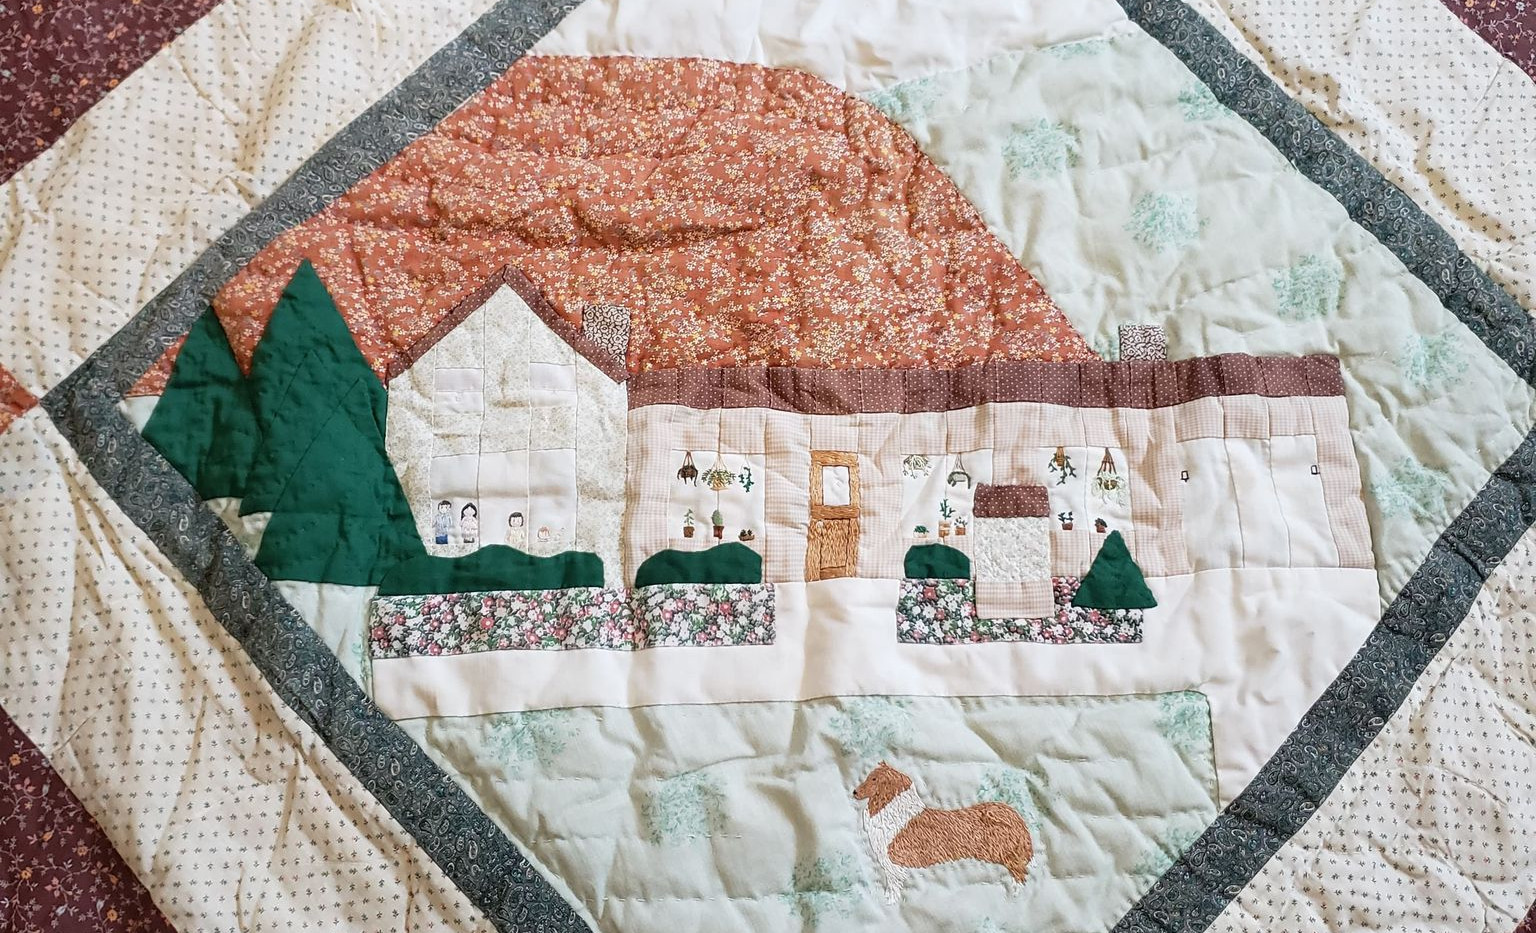 The center of Jean's first king sized quilt